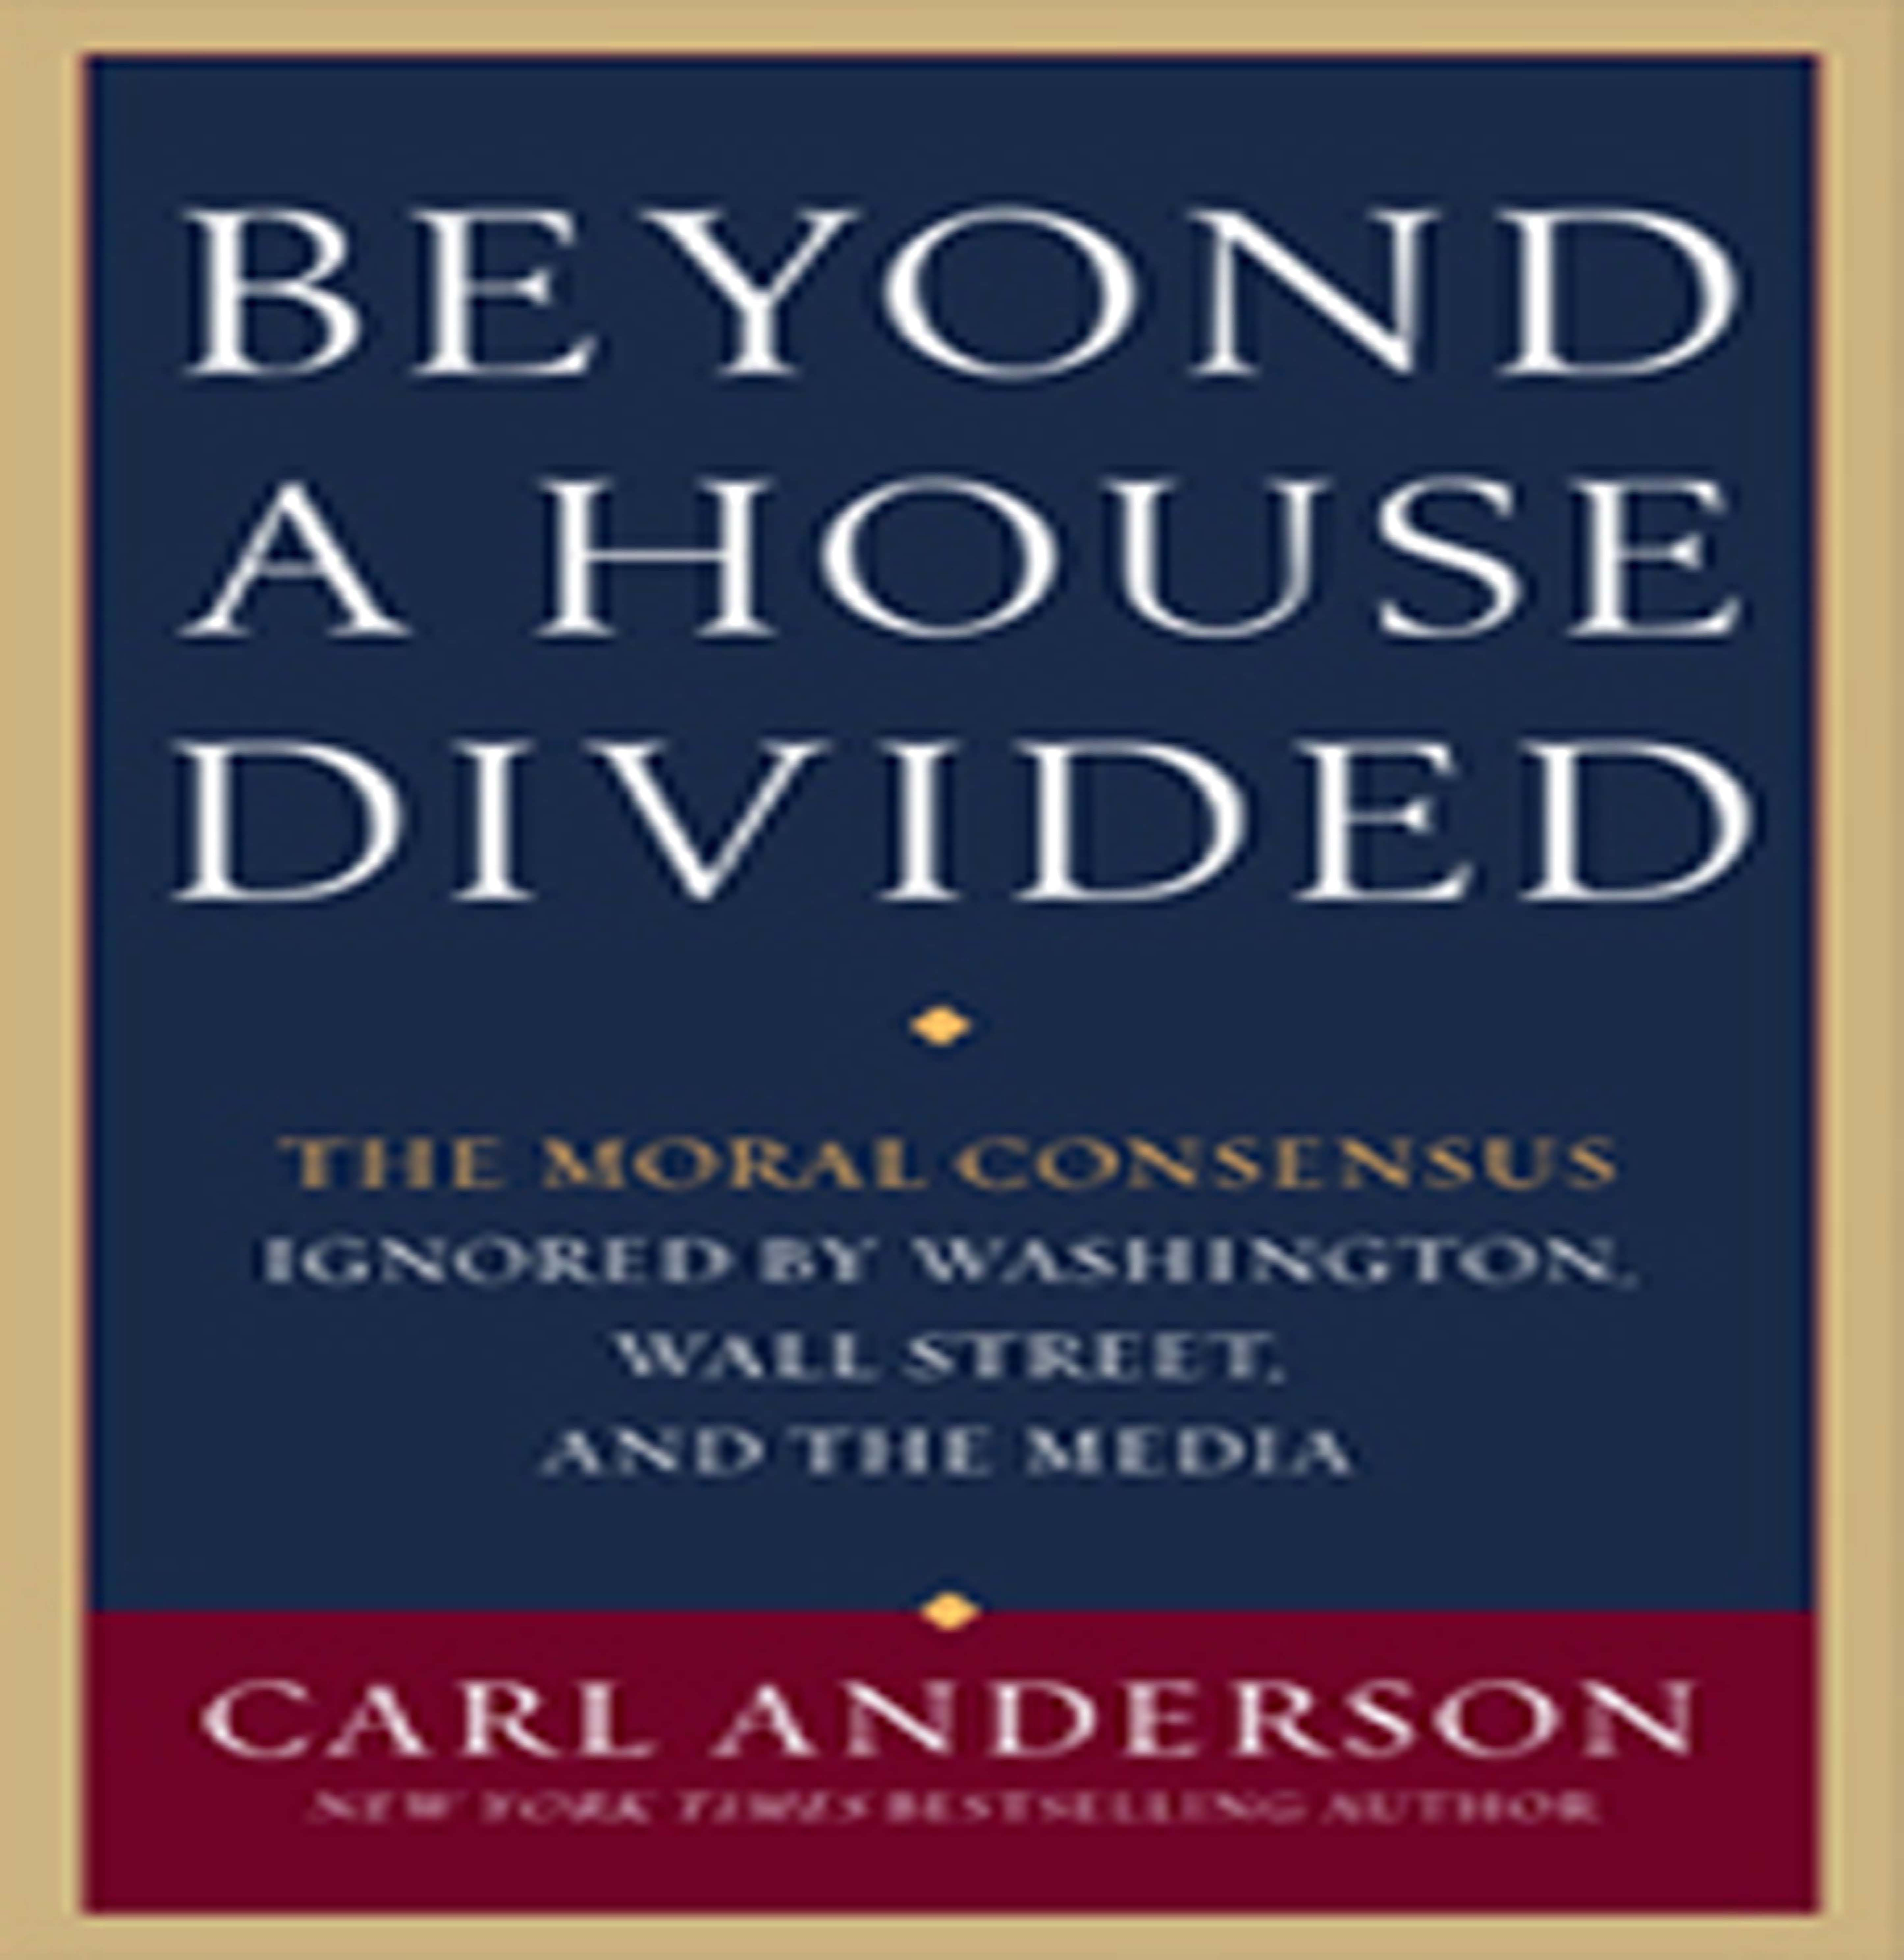 Beyond a House Divided: The Moral Moral Consensus Ignored By Washington, Wall Street and the Media